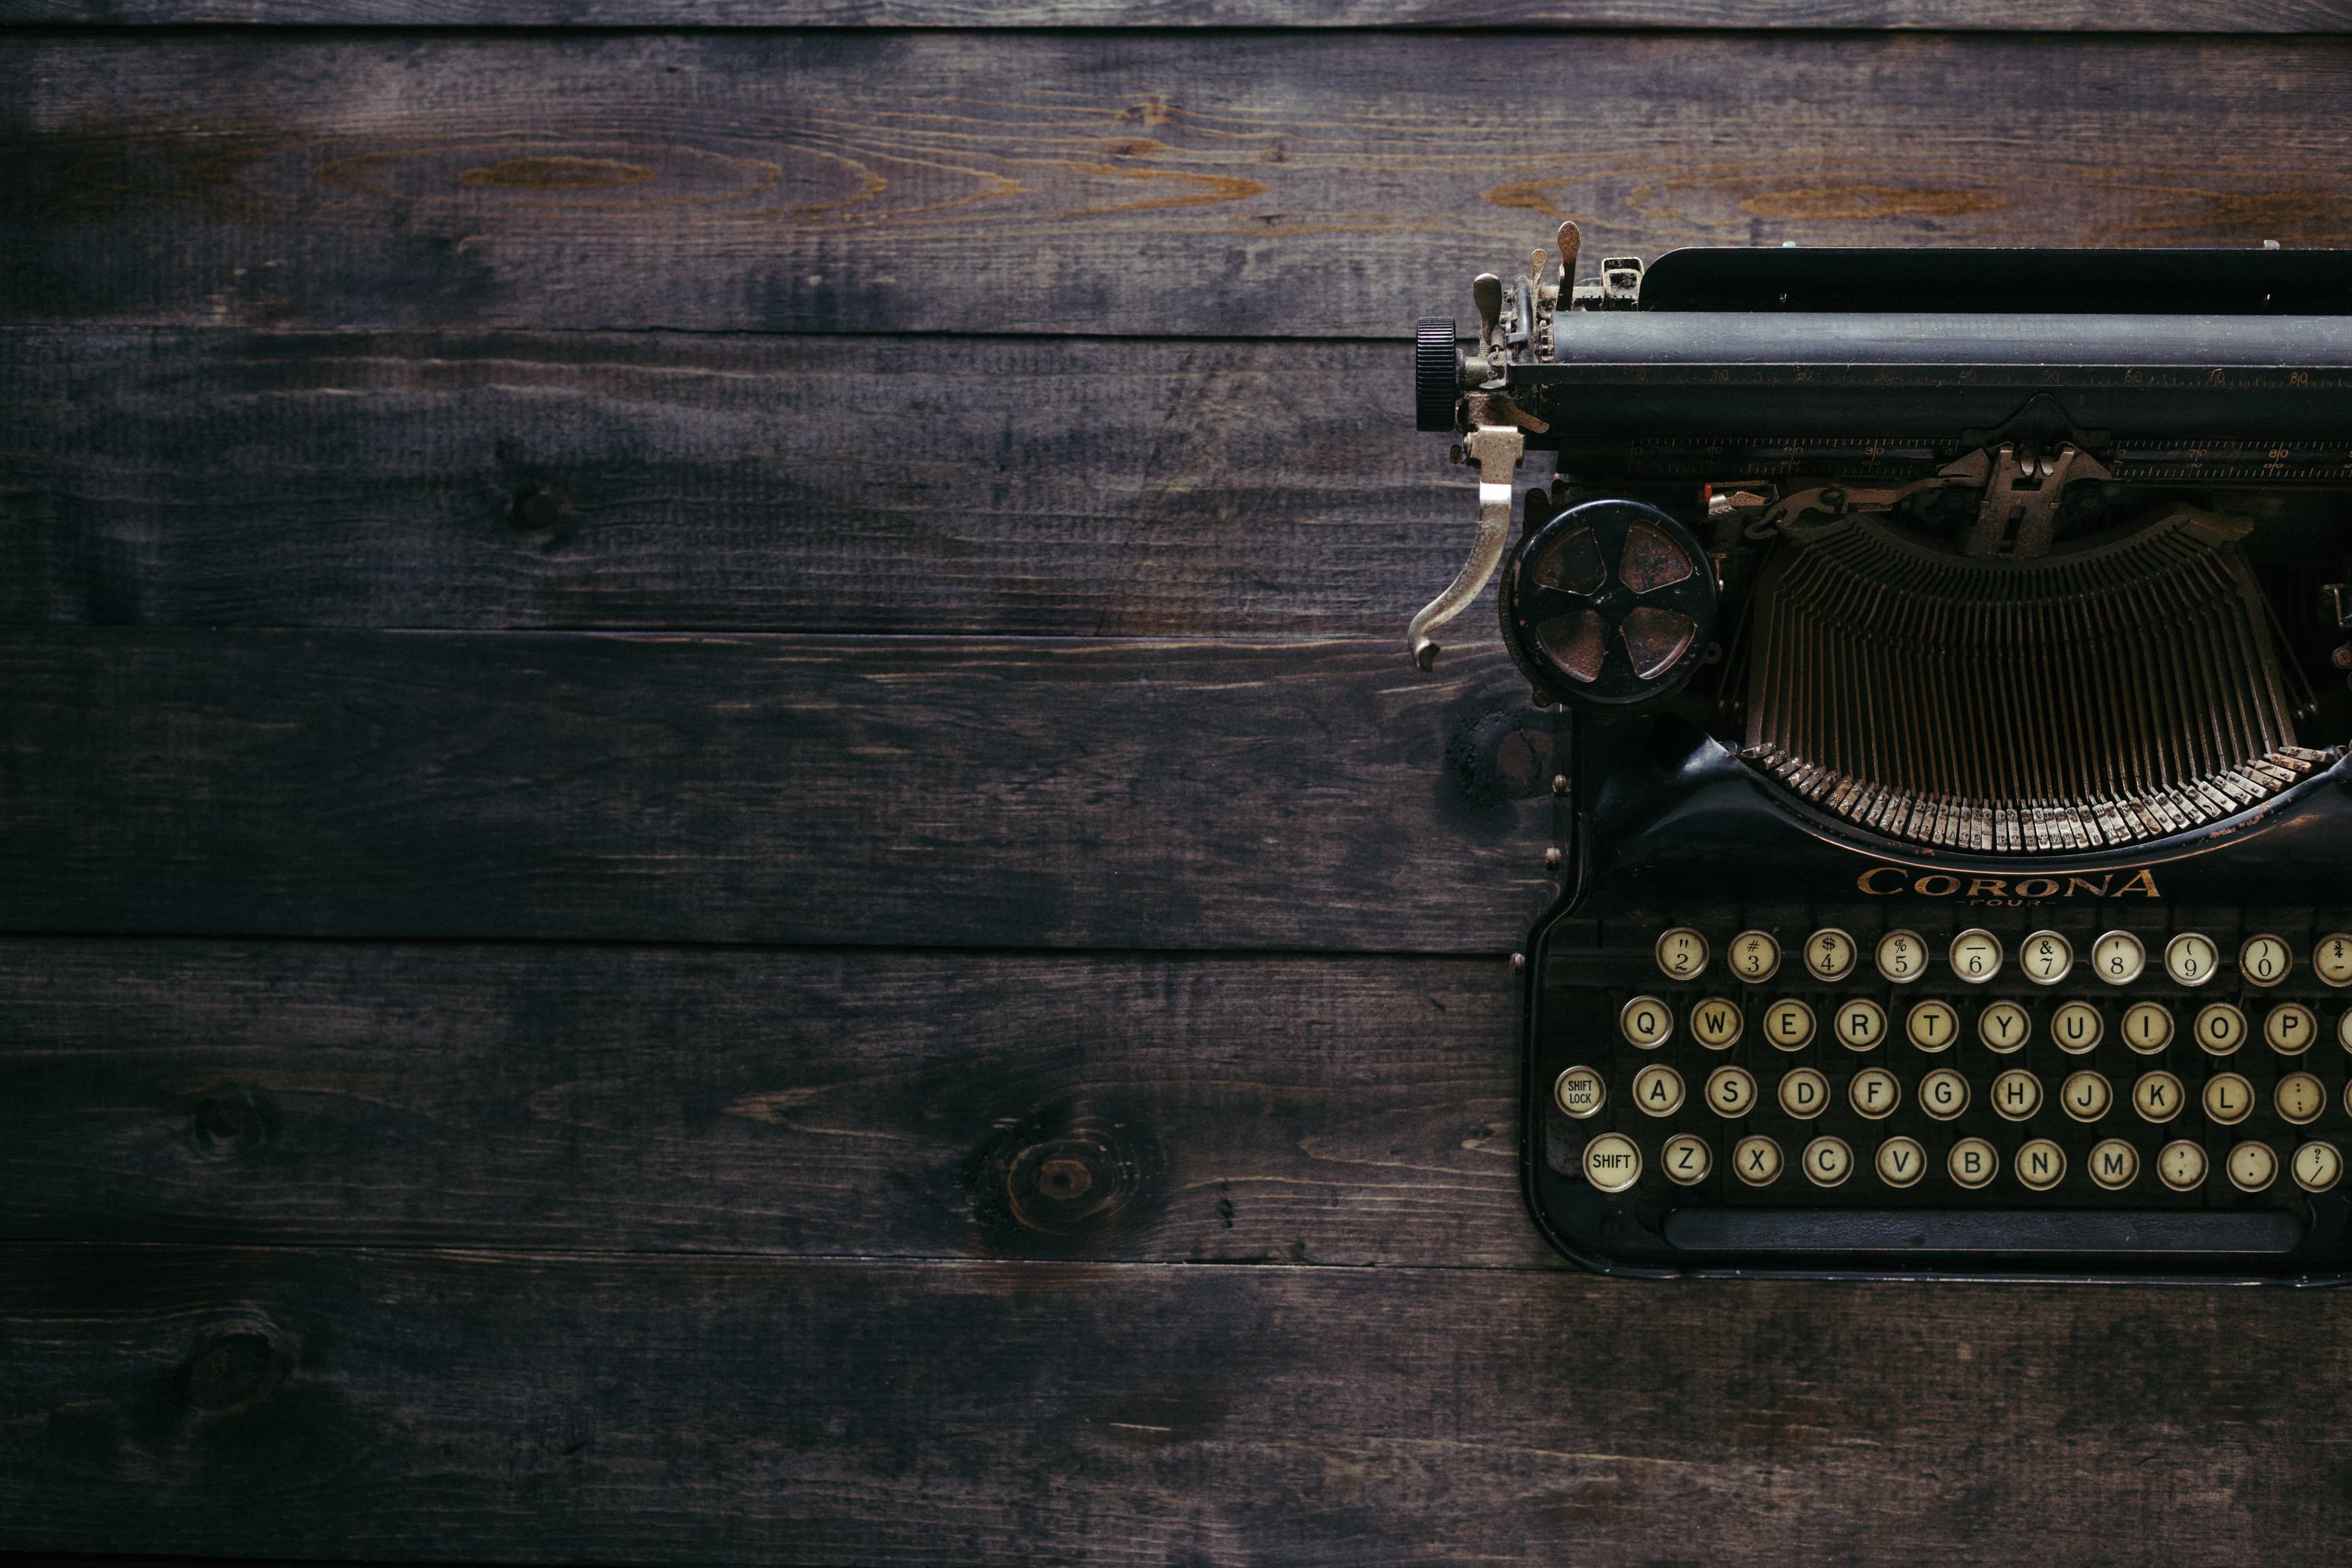 Old-fashioned typewriter on weathered brown wood table